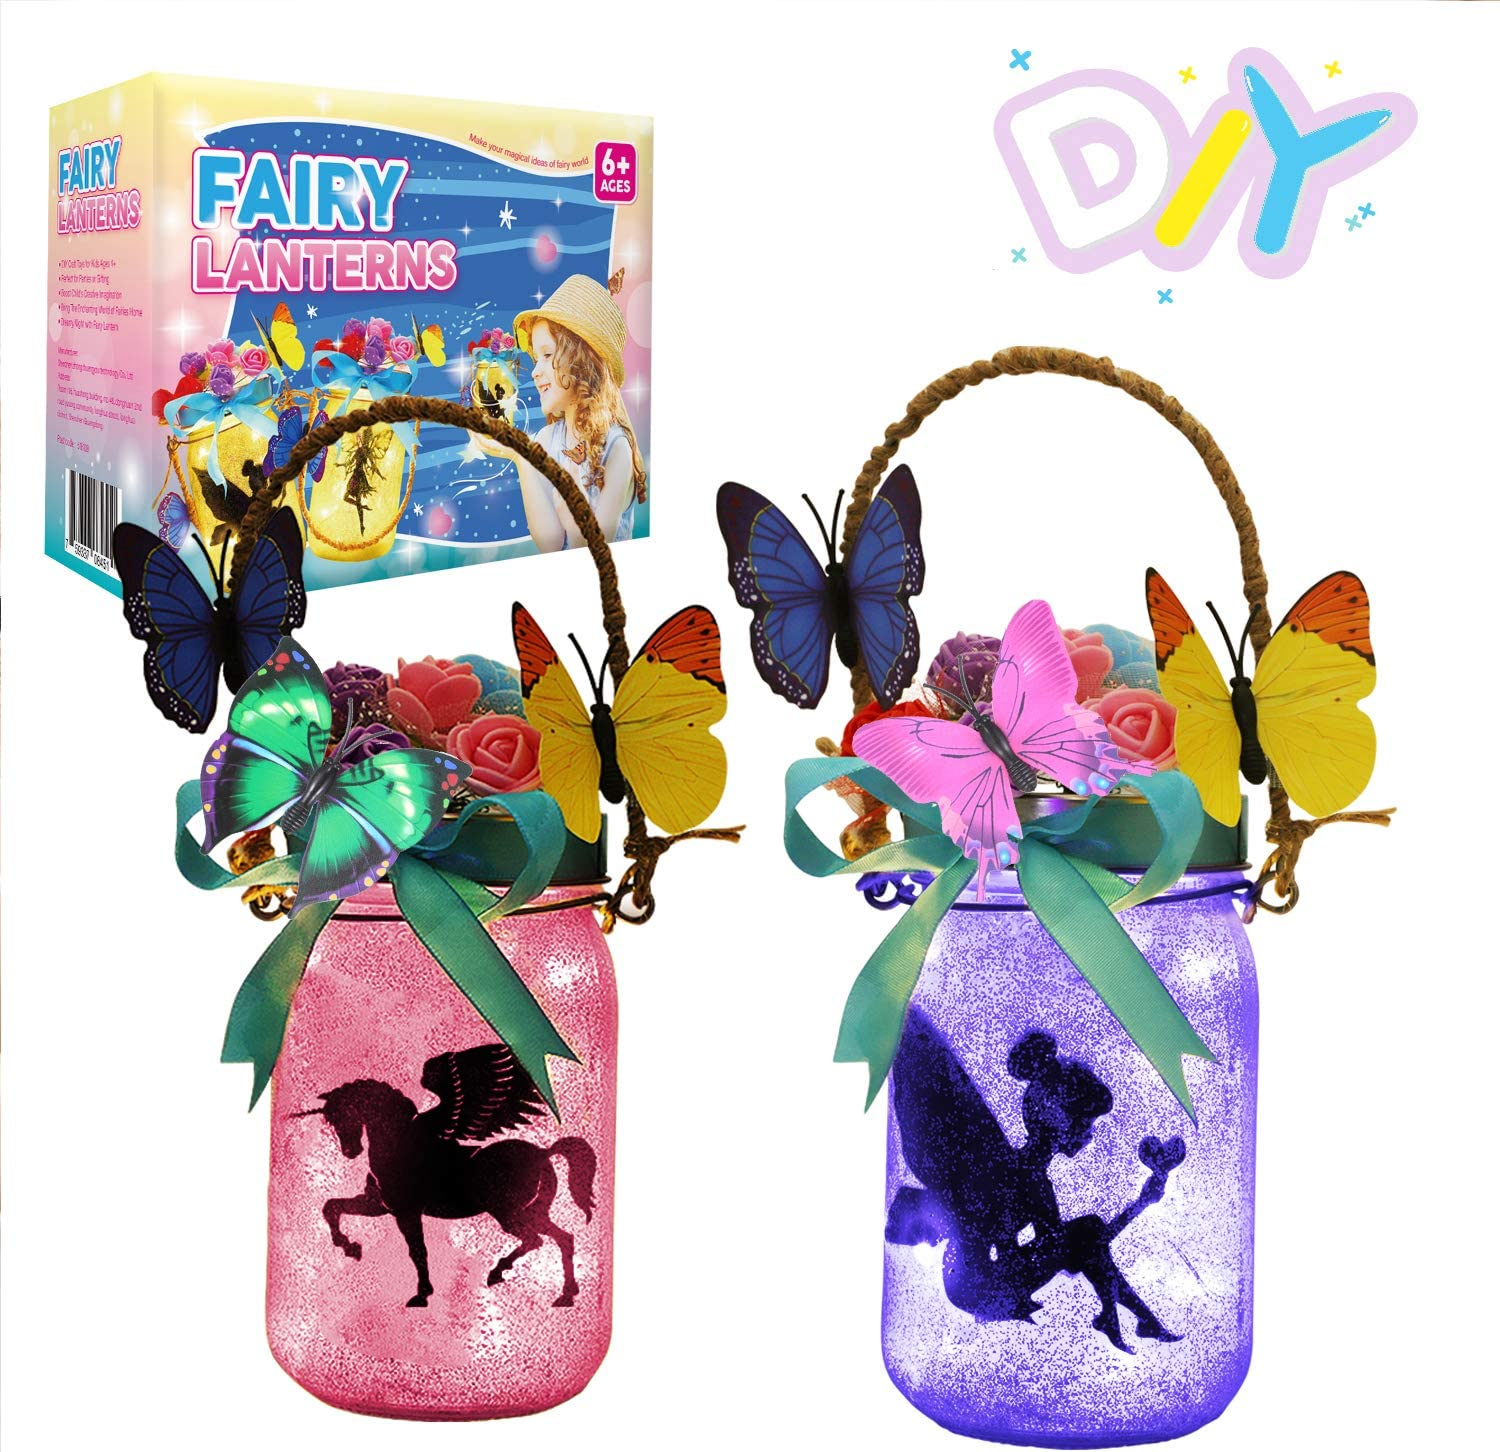 LAYKEN Fairy Lantern Craft Kit for Kids - DIY Make Your Own Fairy Lantern Jar Decor Craft for Girls Age 6 7 8 9 10 Year Old, Great Gift for Girl's Room,Yard, and Garden Decor Art Project